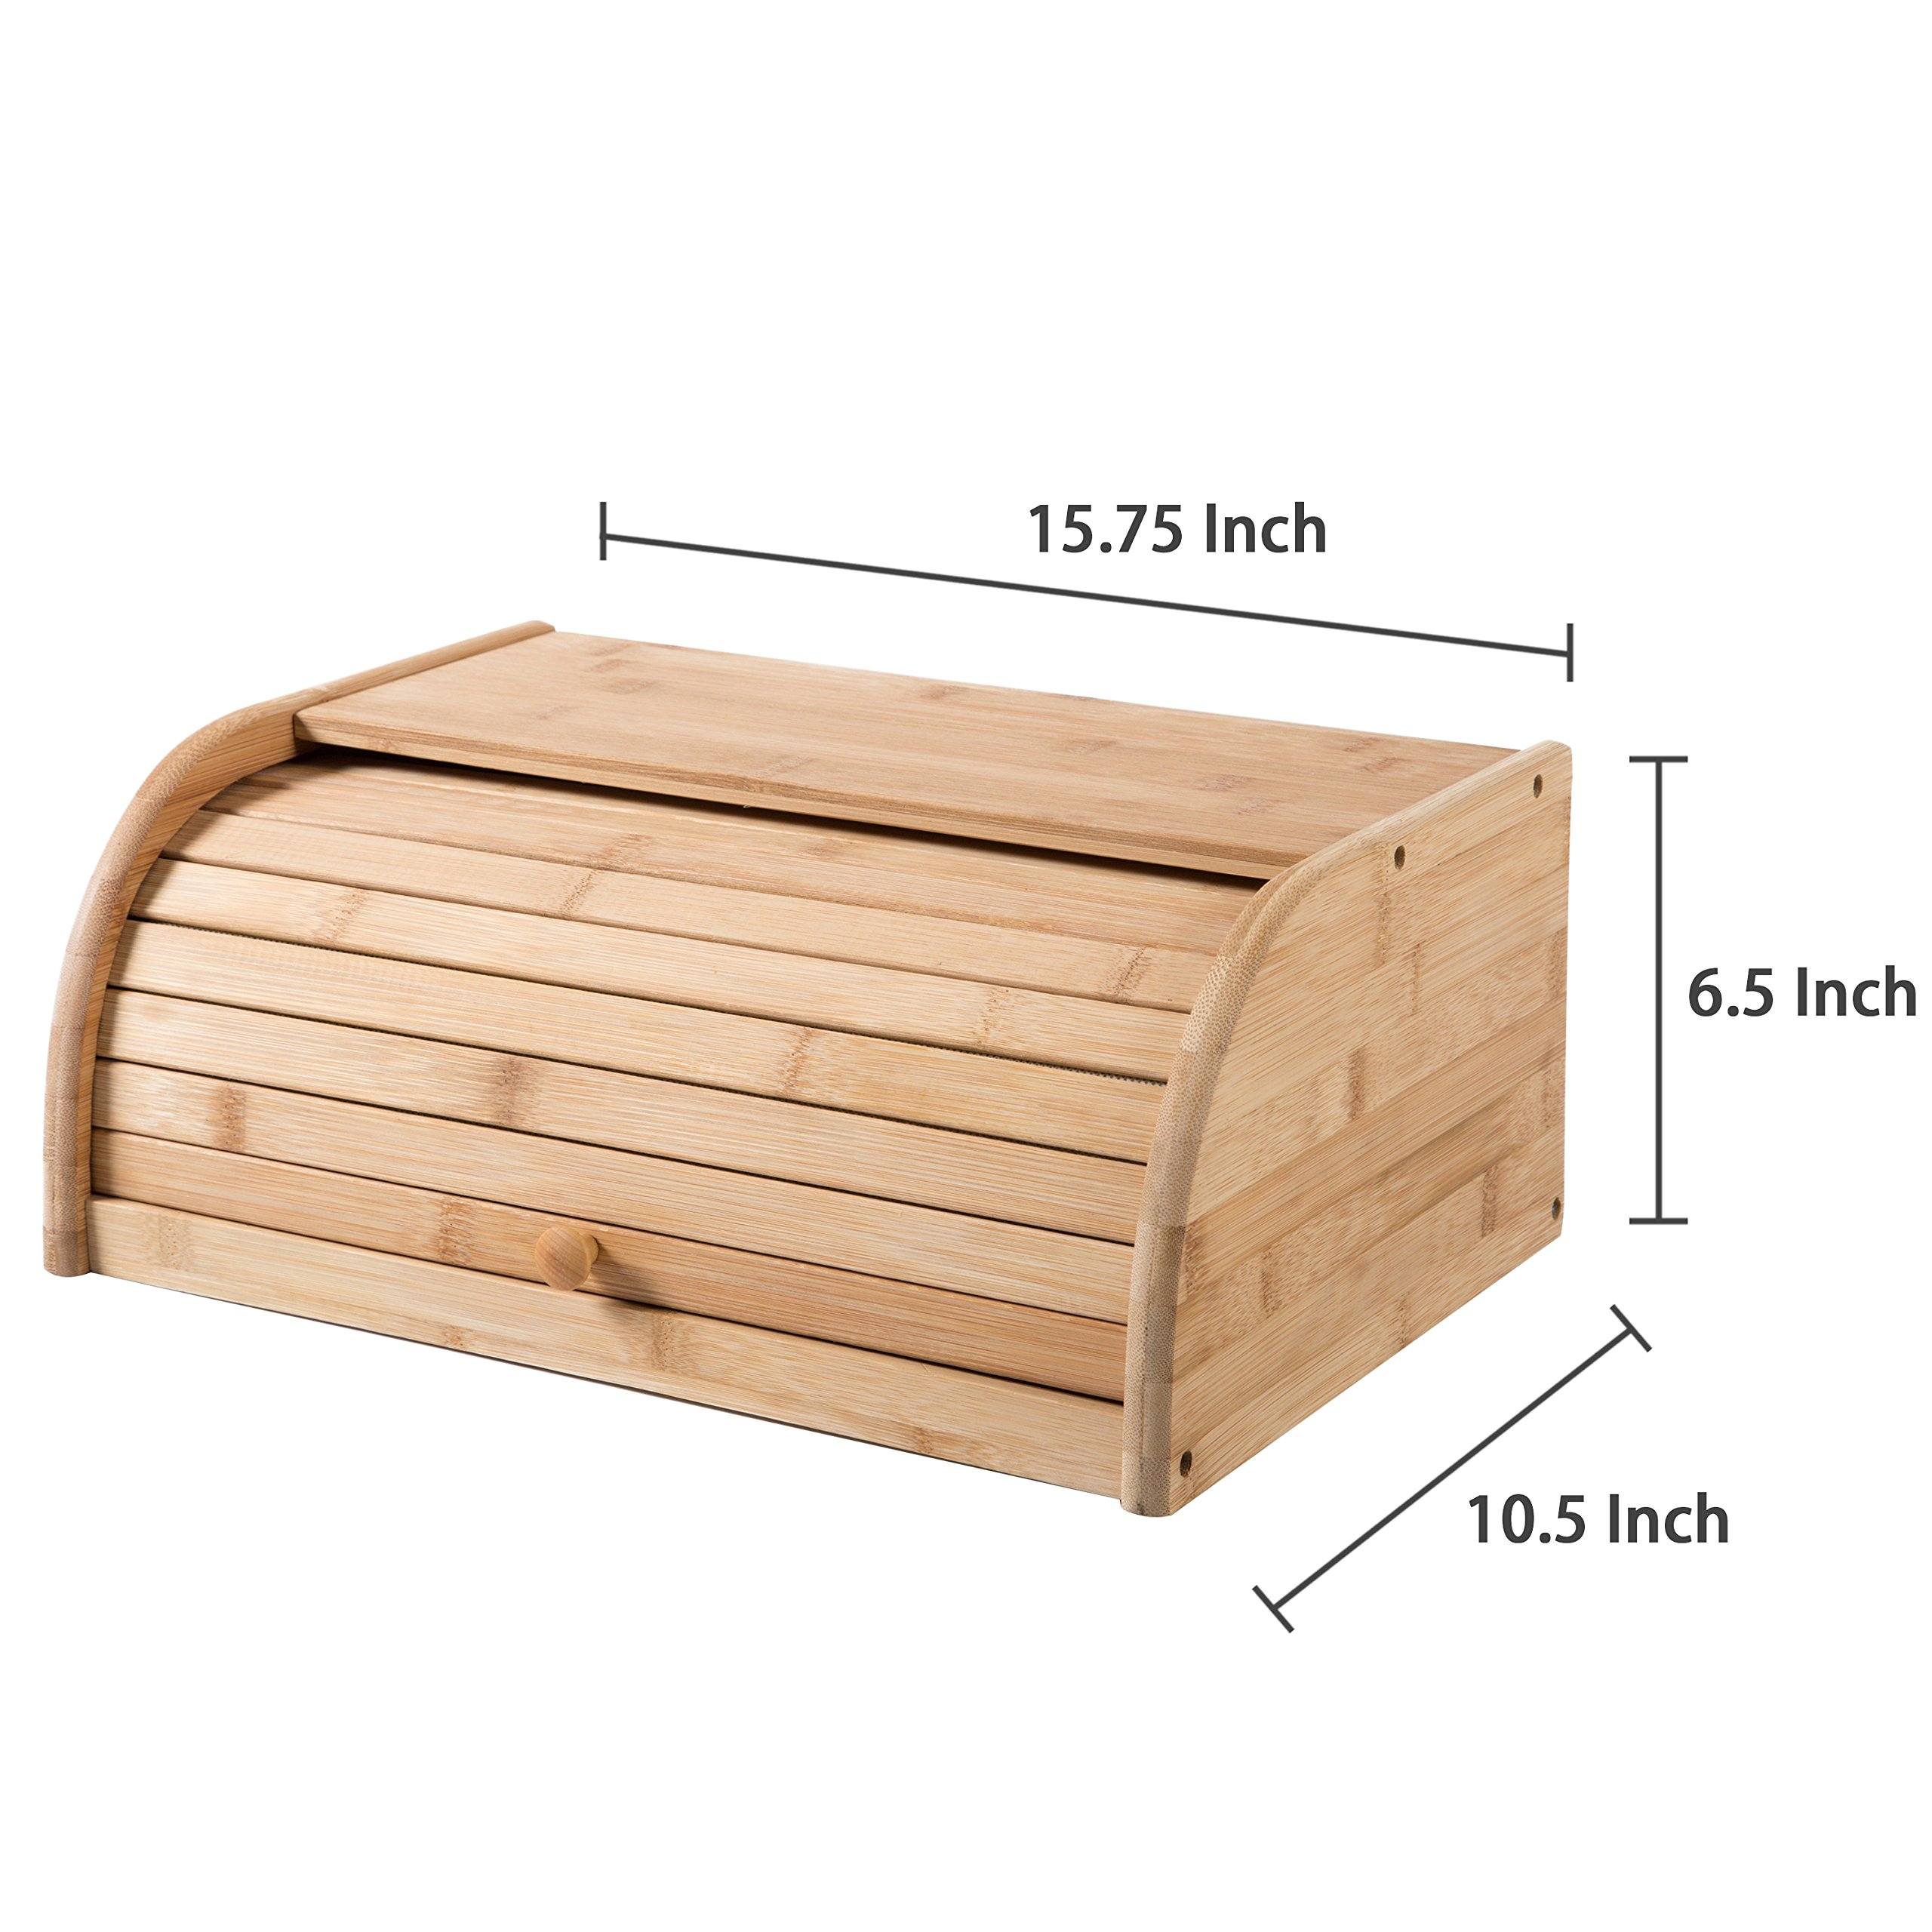 16 inch Kitchen Natural Wooden Bamboo Rolltop Bread Box Food Storage - MyGift by MyGift (Image #6)